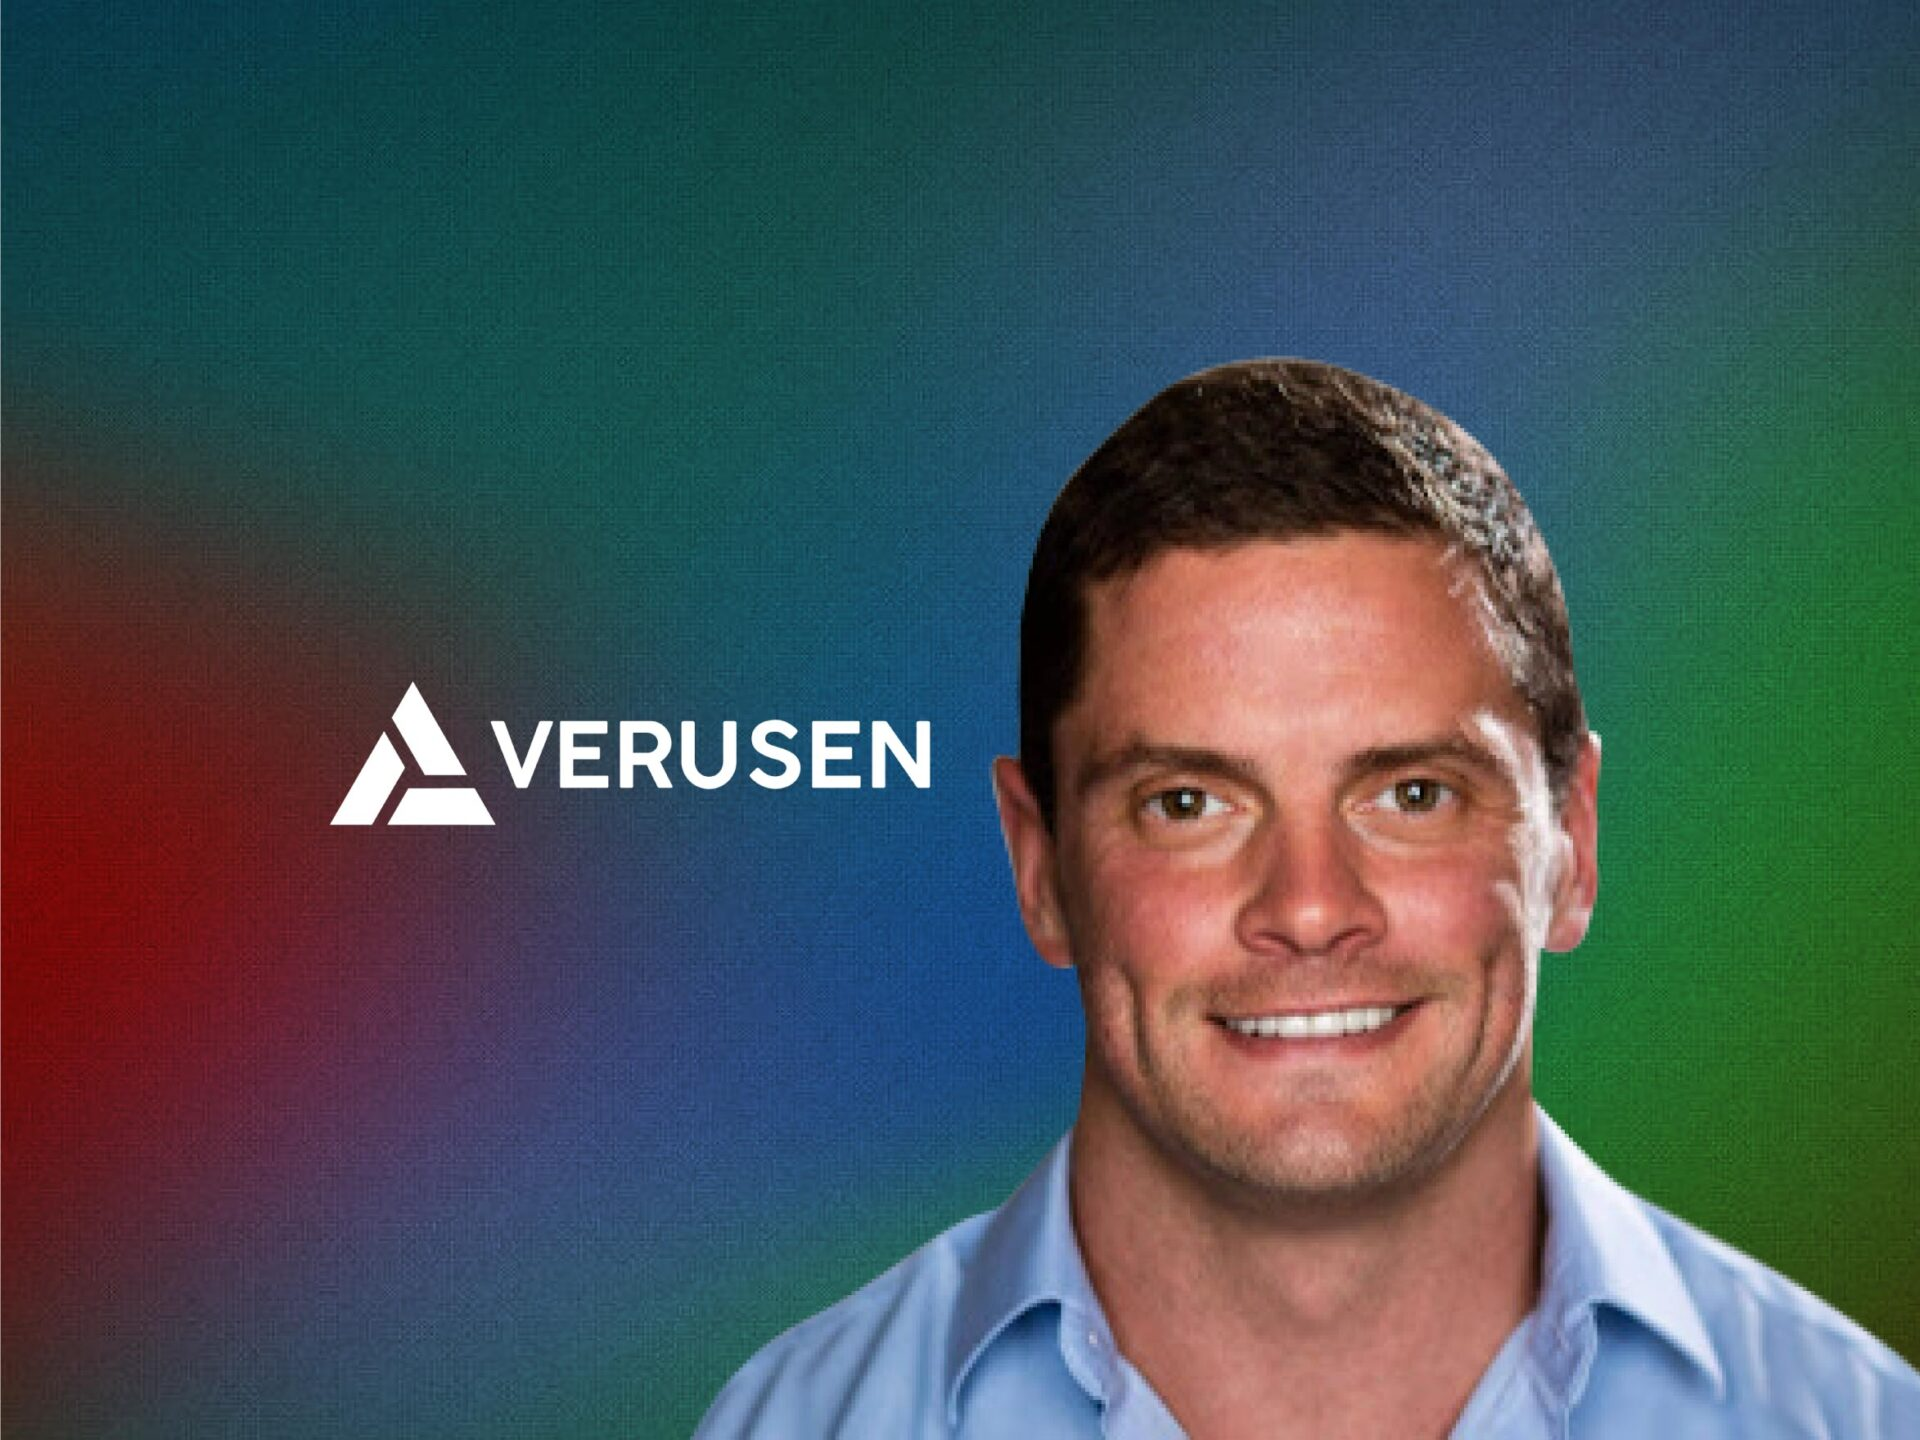 Global Fintech Interview with Brent Stringer, Chief Financial Officer at Verusen